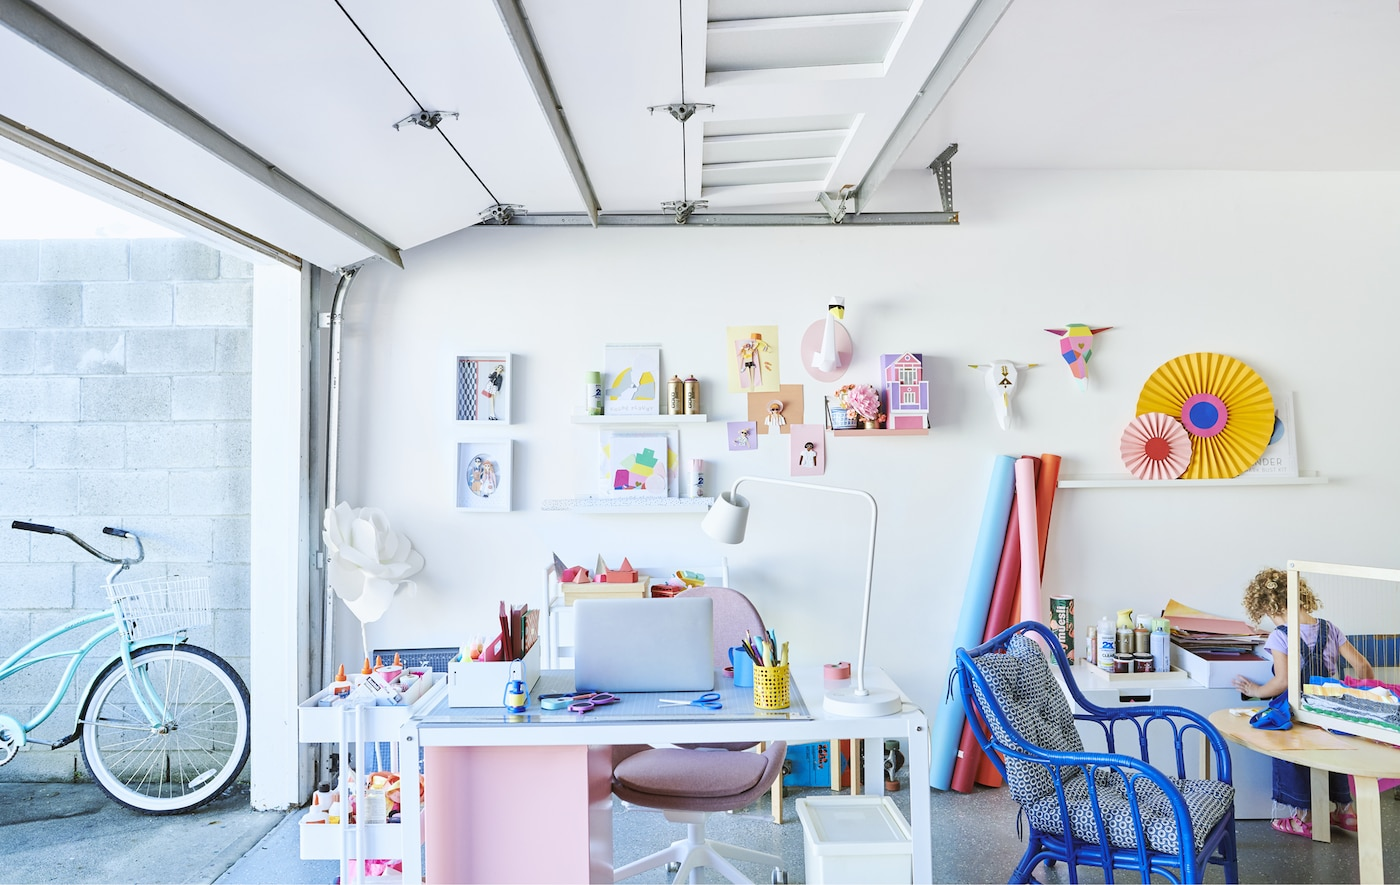 A colorful workspace with desk, trolley, chairs and wall displays, in a garage with the roller door open.